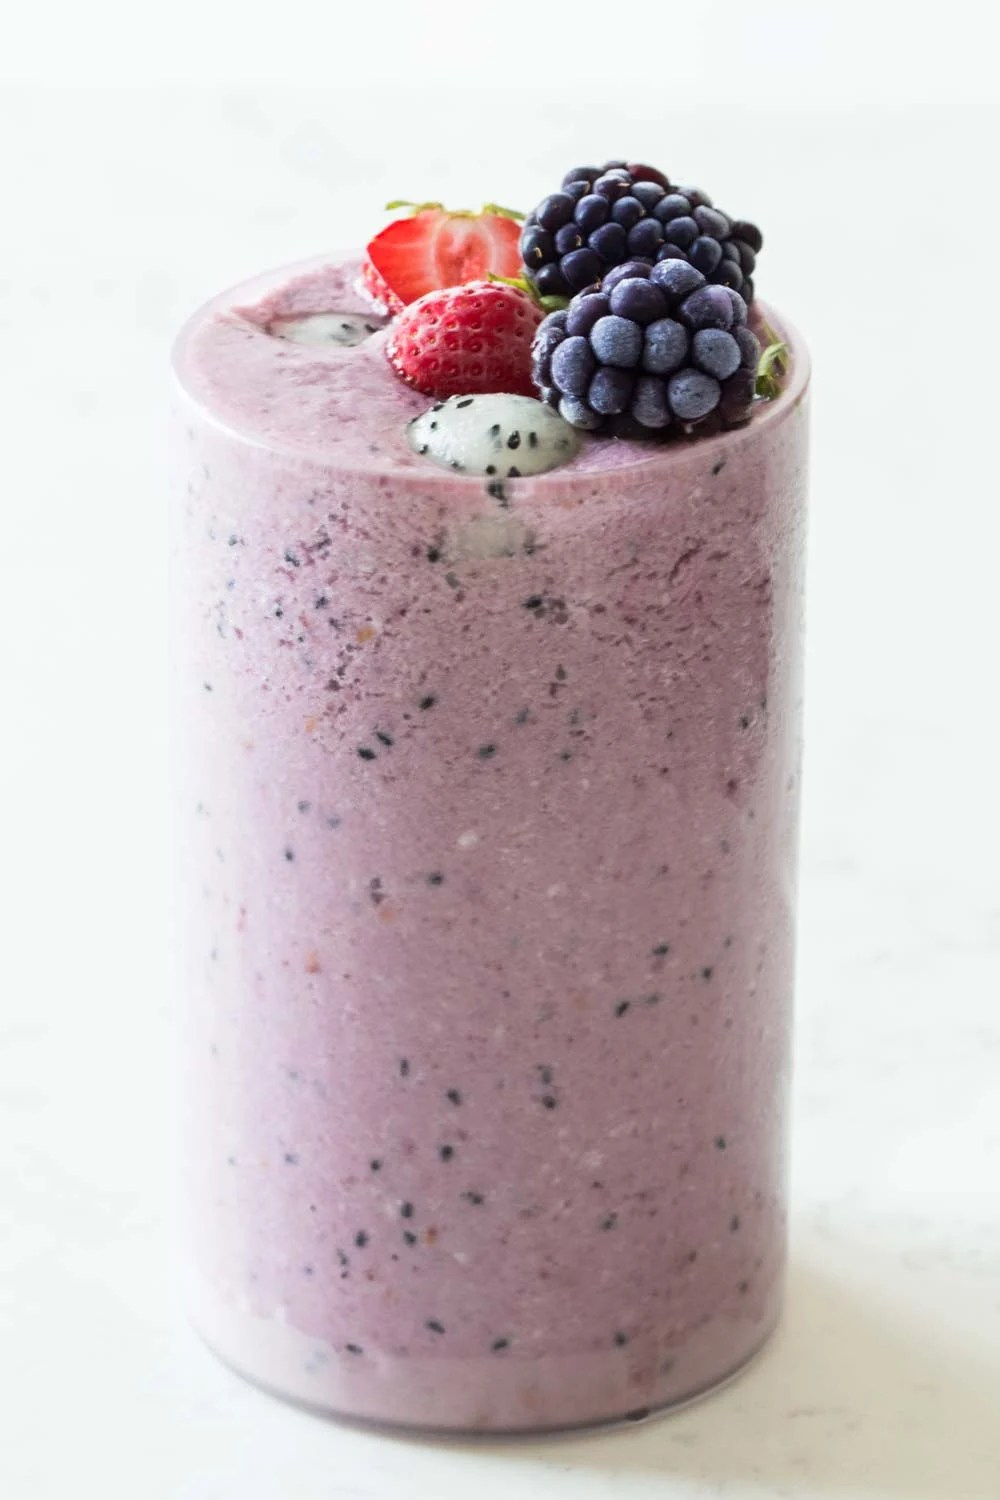 Tall glass filled to the rim with dragon fruit smoothie topped with strawberries, blackberries and balls of dragon fruit